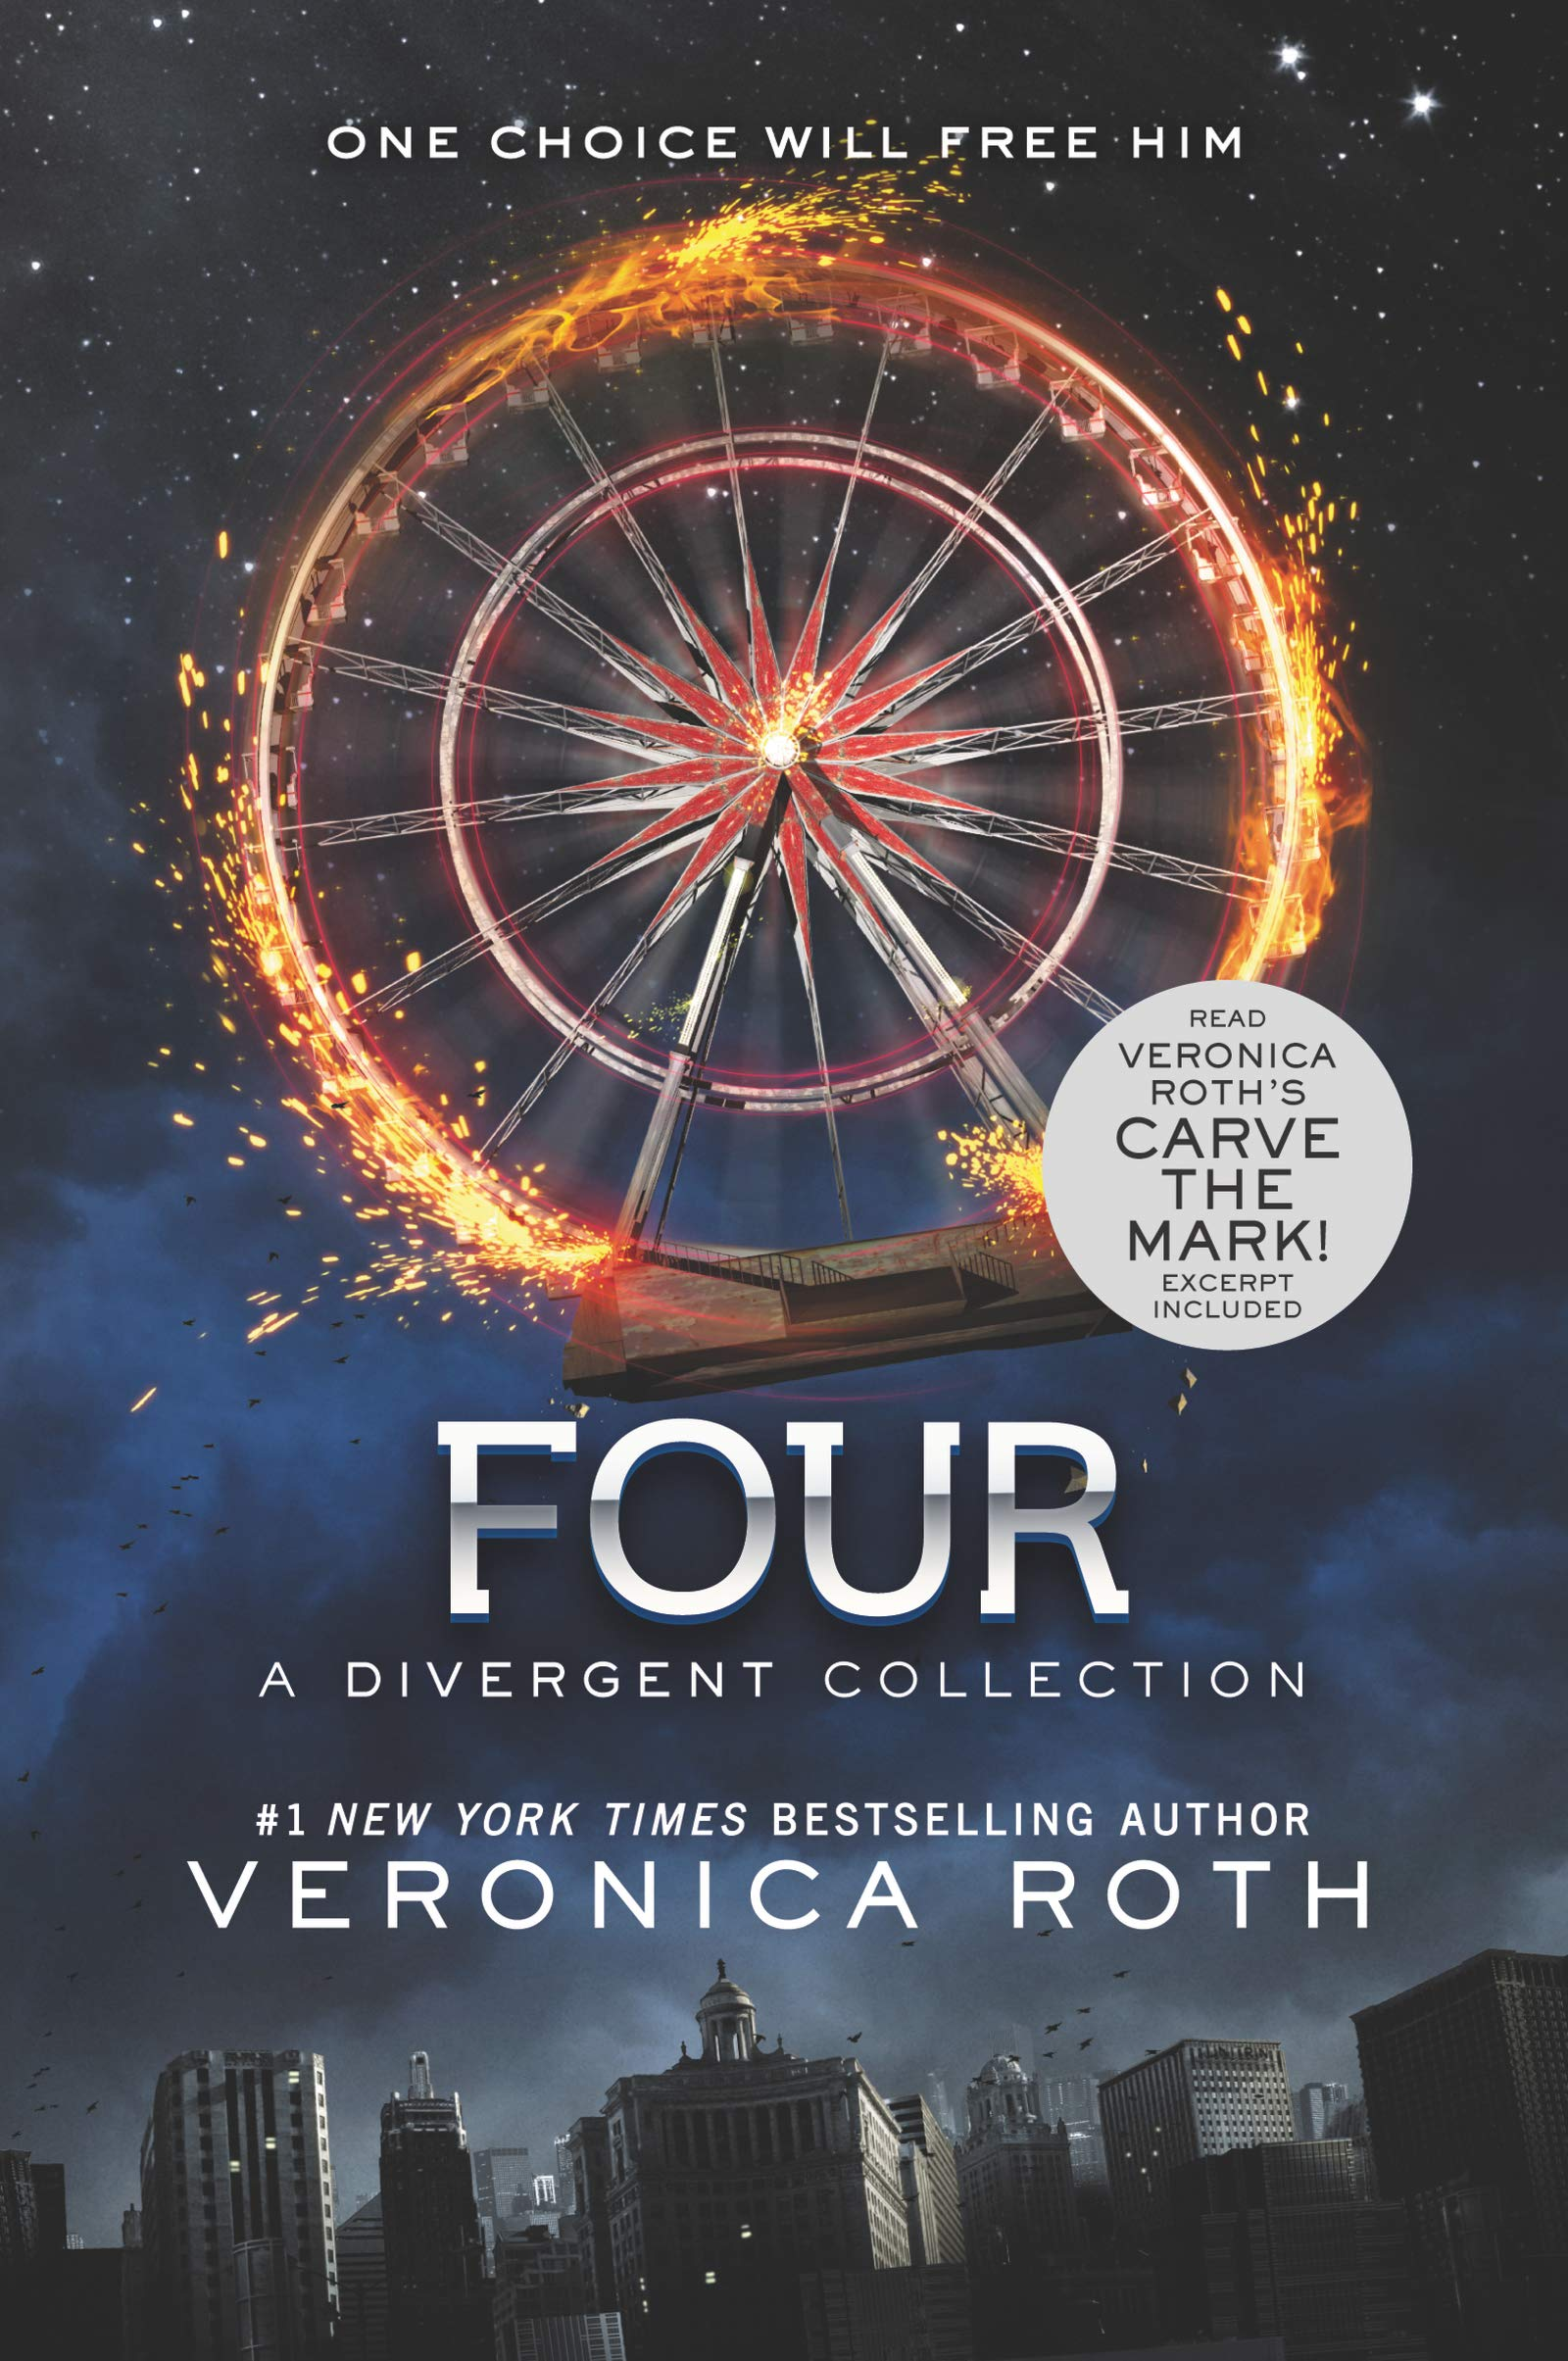 Amazon.com: Four: A Divergent Collection (Divergent Series Story)  (9780062421364): Roth, Veronica: Books